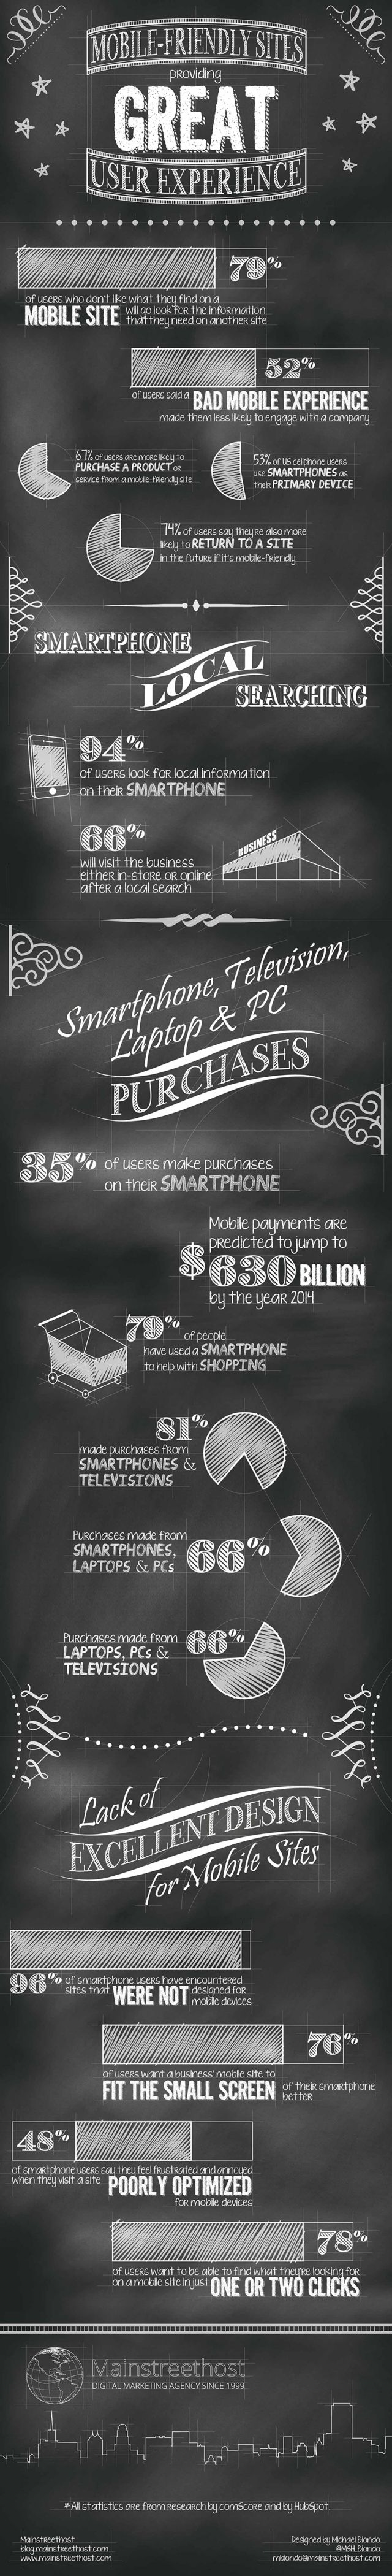 Not Got a Mobile Friendly Website Yet ? These 15 Stats Show Why You MUST http://blog.red-website-design.co.uk/2015/05/07/not-got-a-mobile-friendly-website-yet-these-15-stats-show-why-you-must/#more-8841